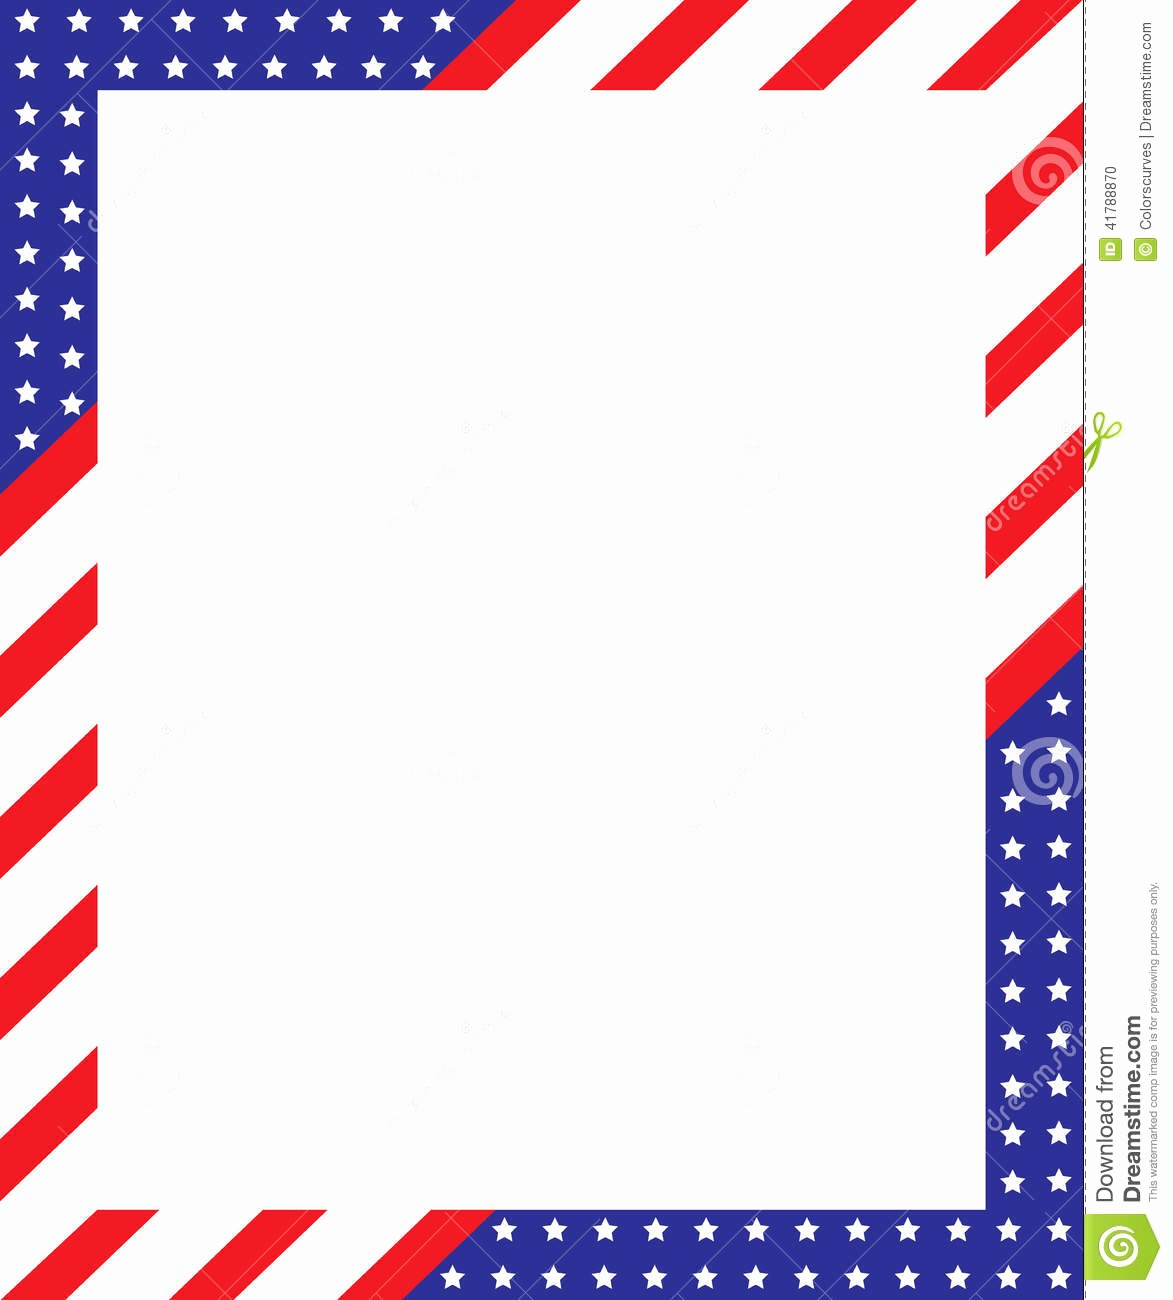 Patriotic Borders for Word Documents Luxury Patriotic Border Frame Stock Vector Illustration Of